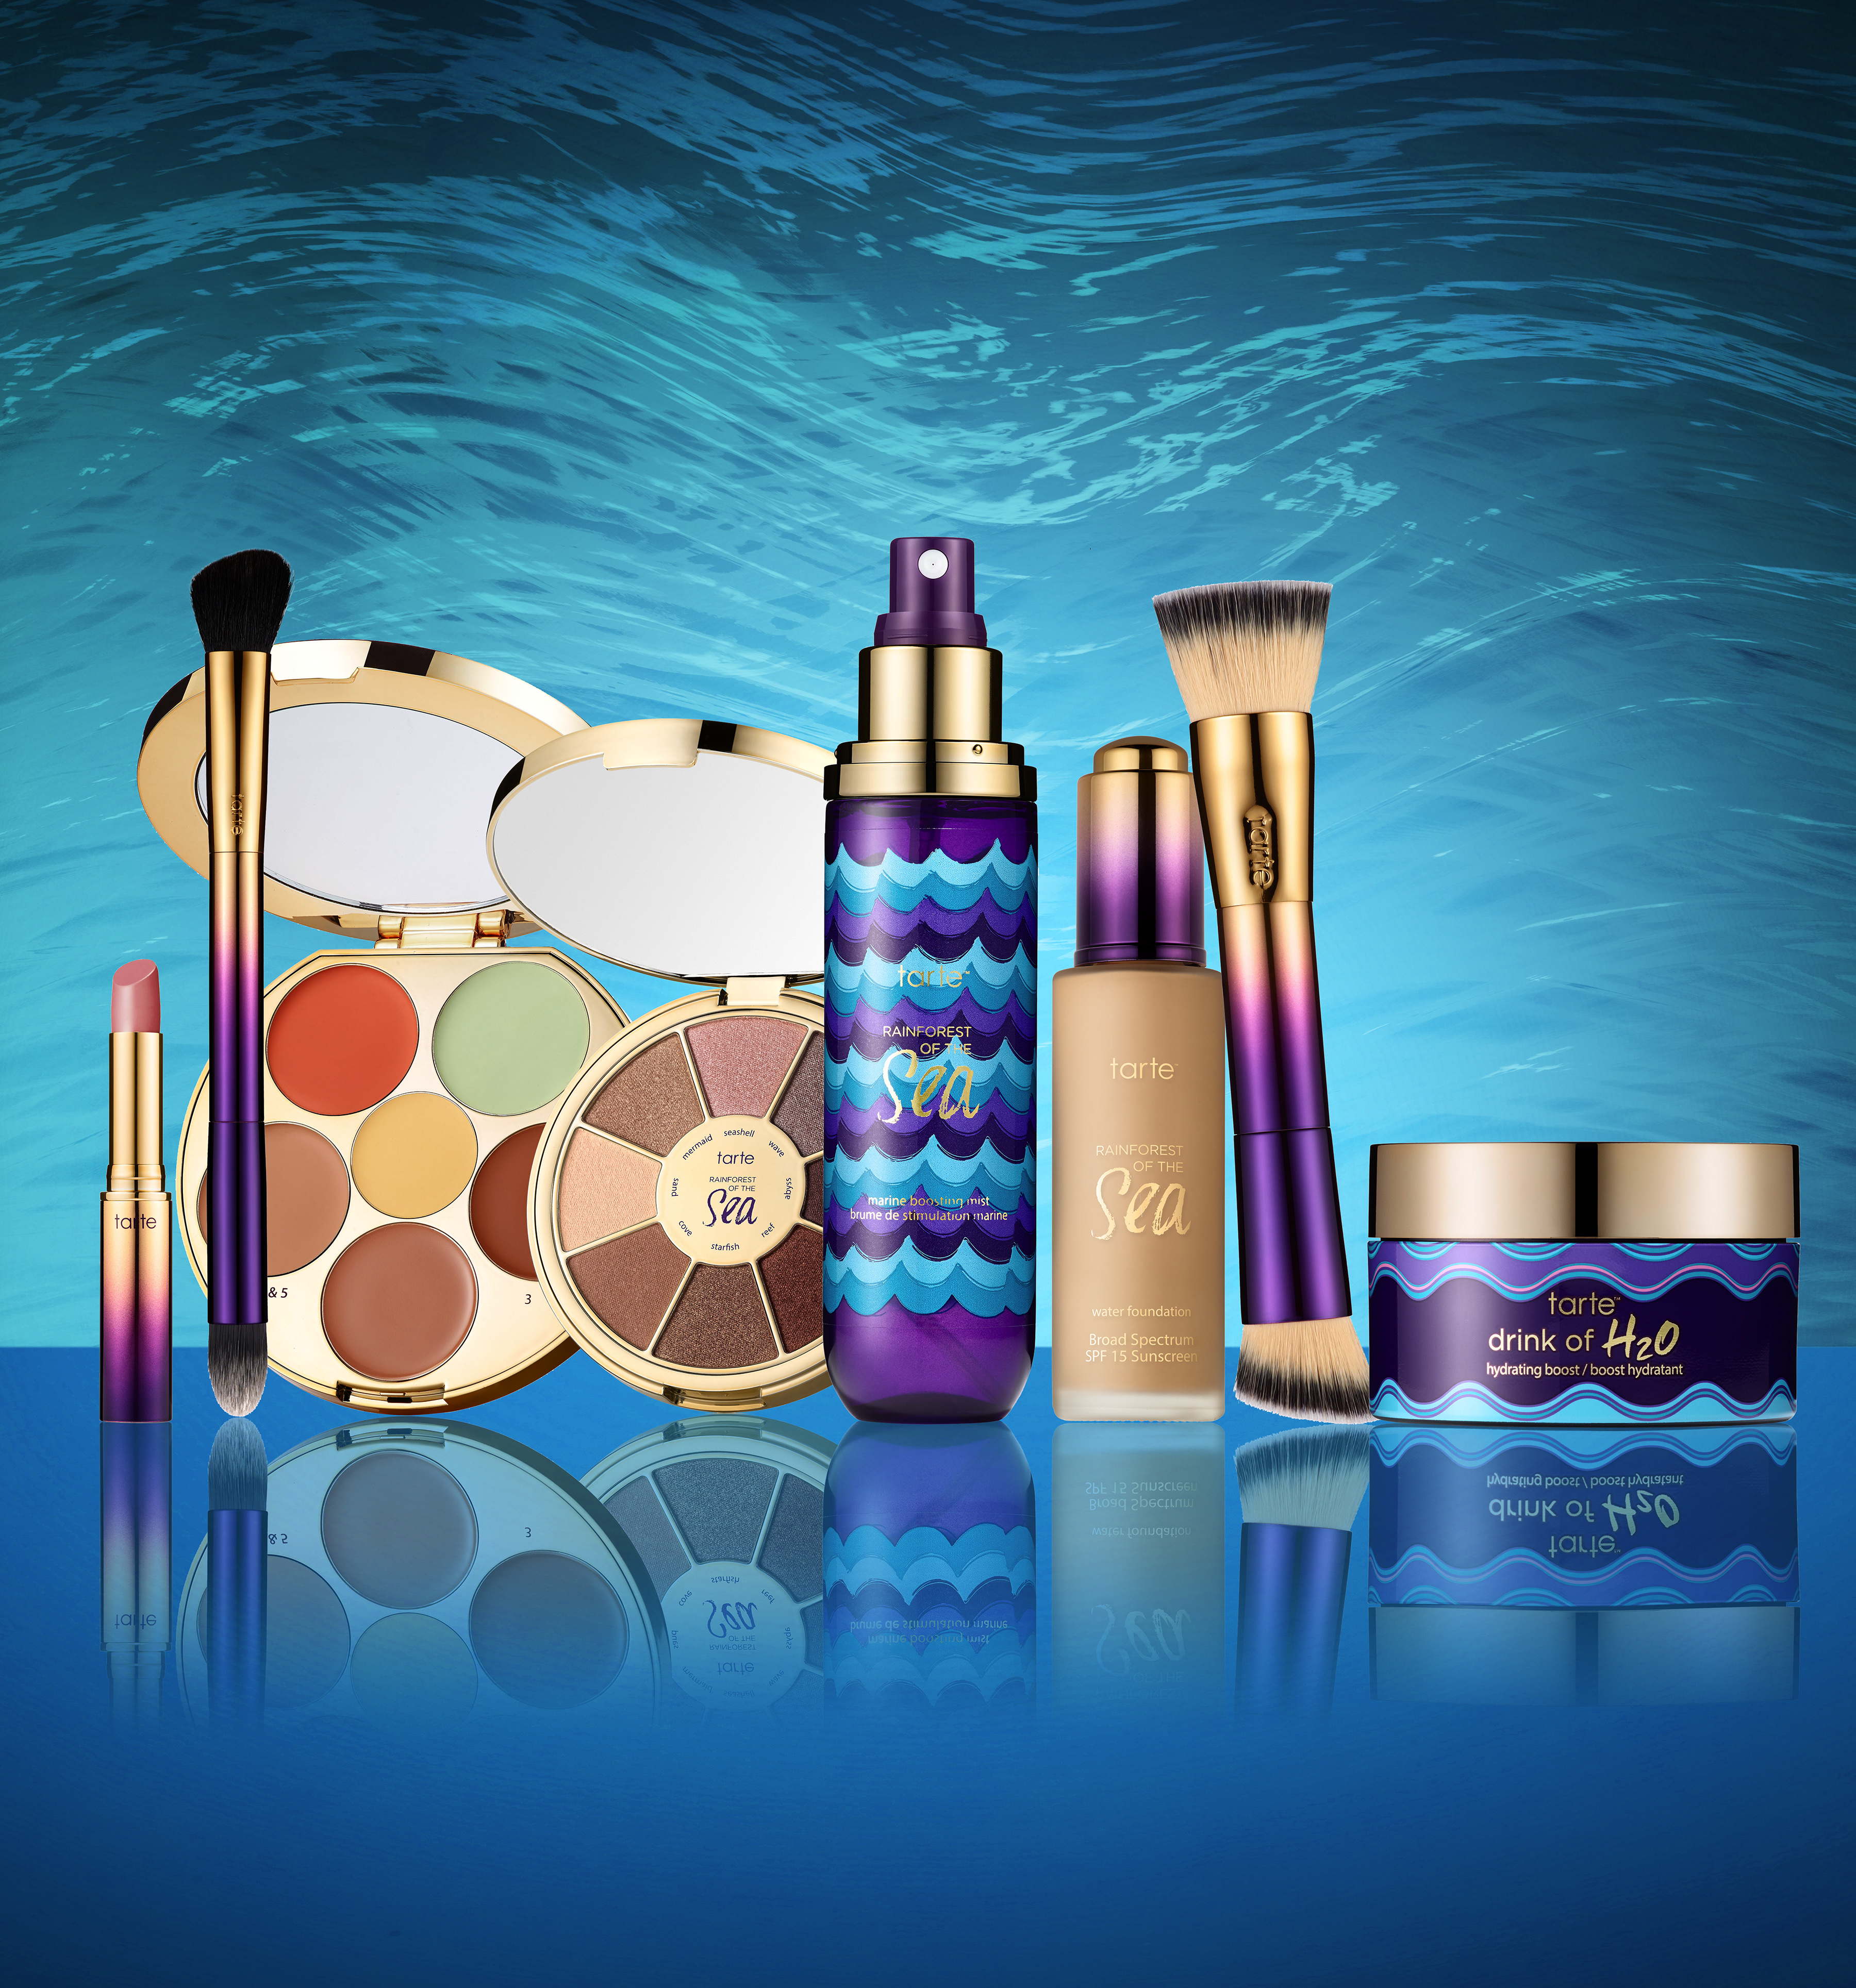 Rainforest of the Sea collection for Sephora.